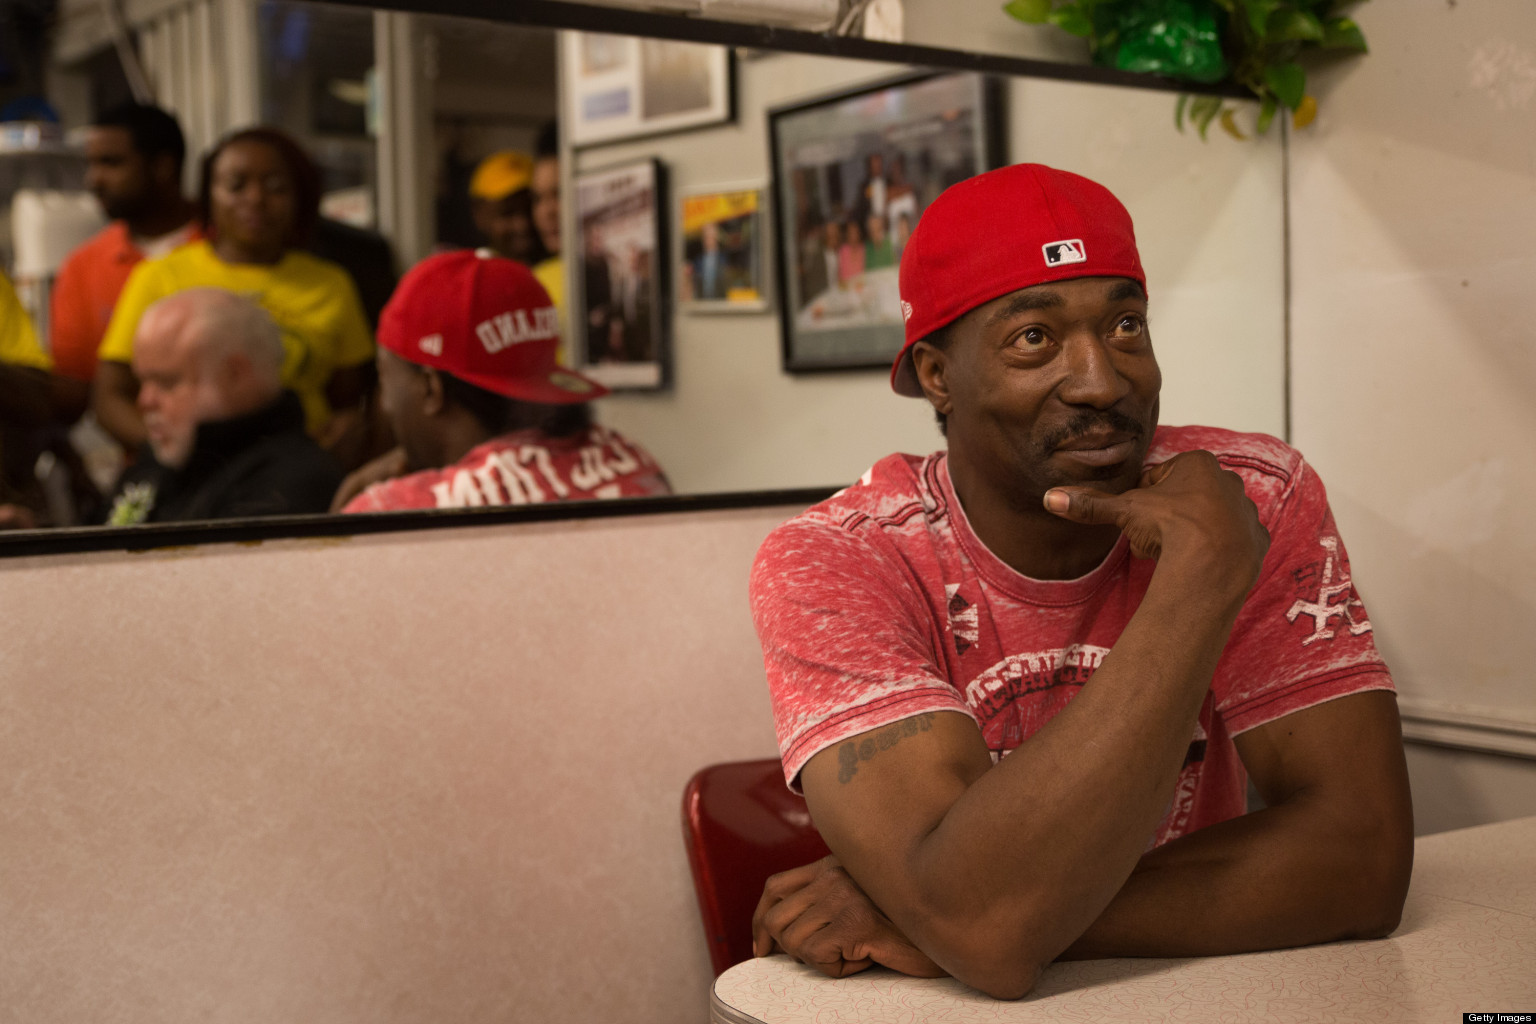 Charles Ramsey, Cleveland Kidnapping Hero, Offered Free ...